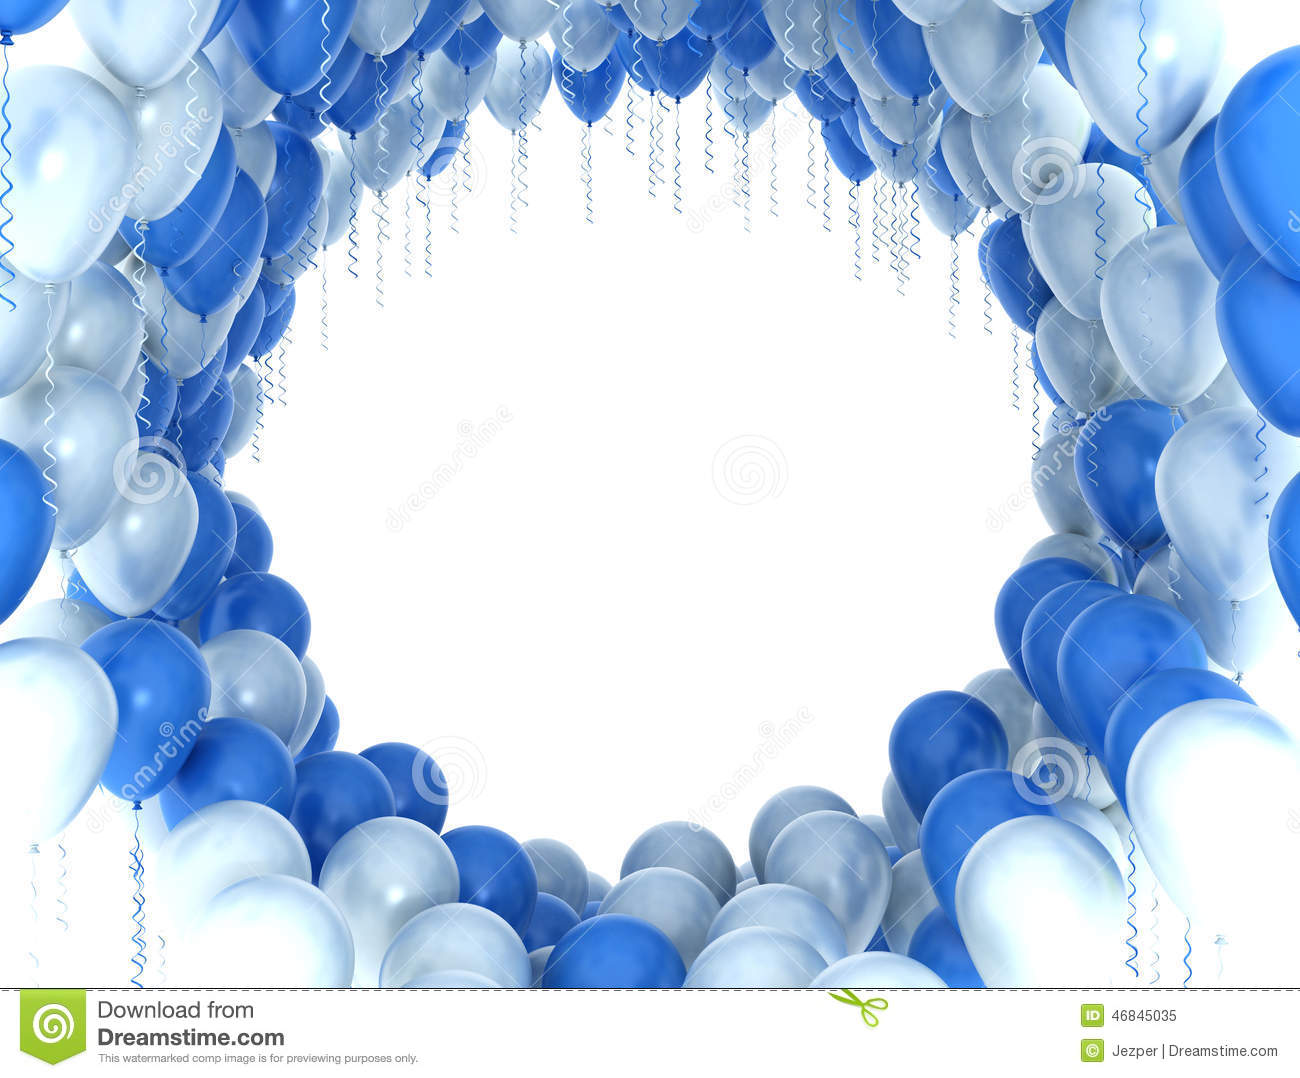 blue and white party balloons stock illustration illustration of